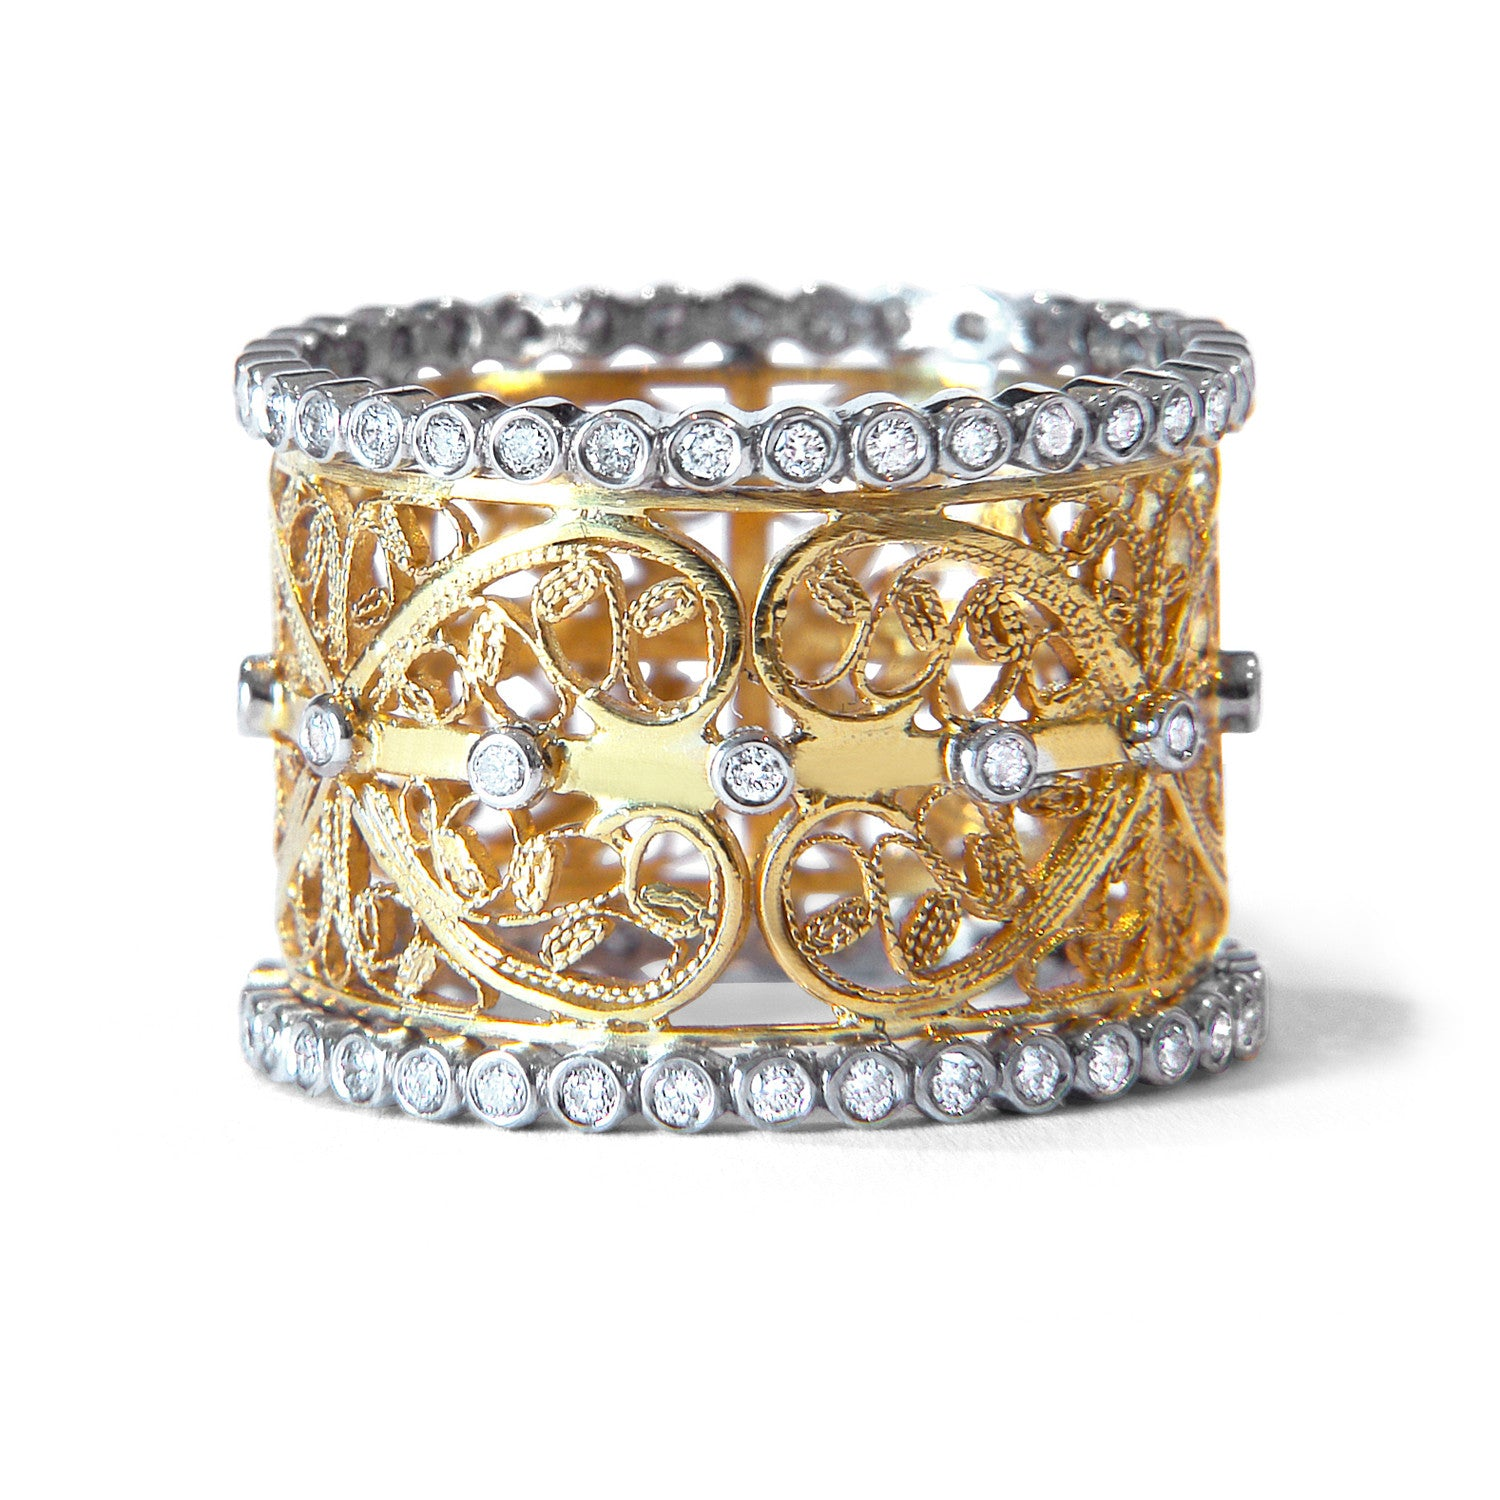 Bespoke engagement/wedding ring - recycled gold, conflict-free diamonds and filigree